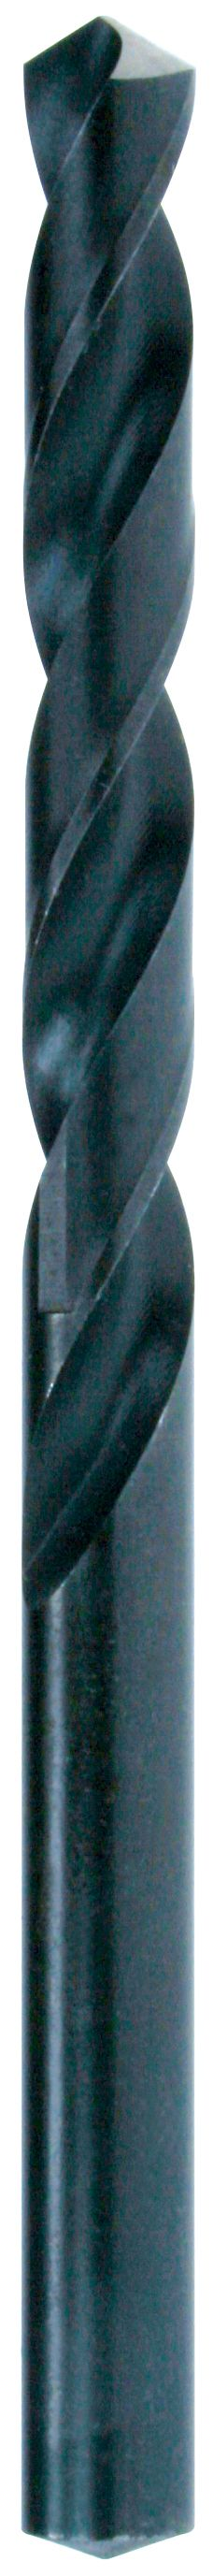 Makita HSS Ground Point Standard Drill Bits